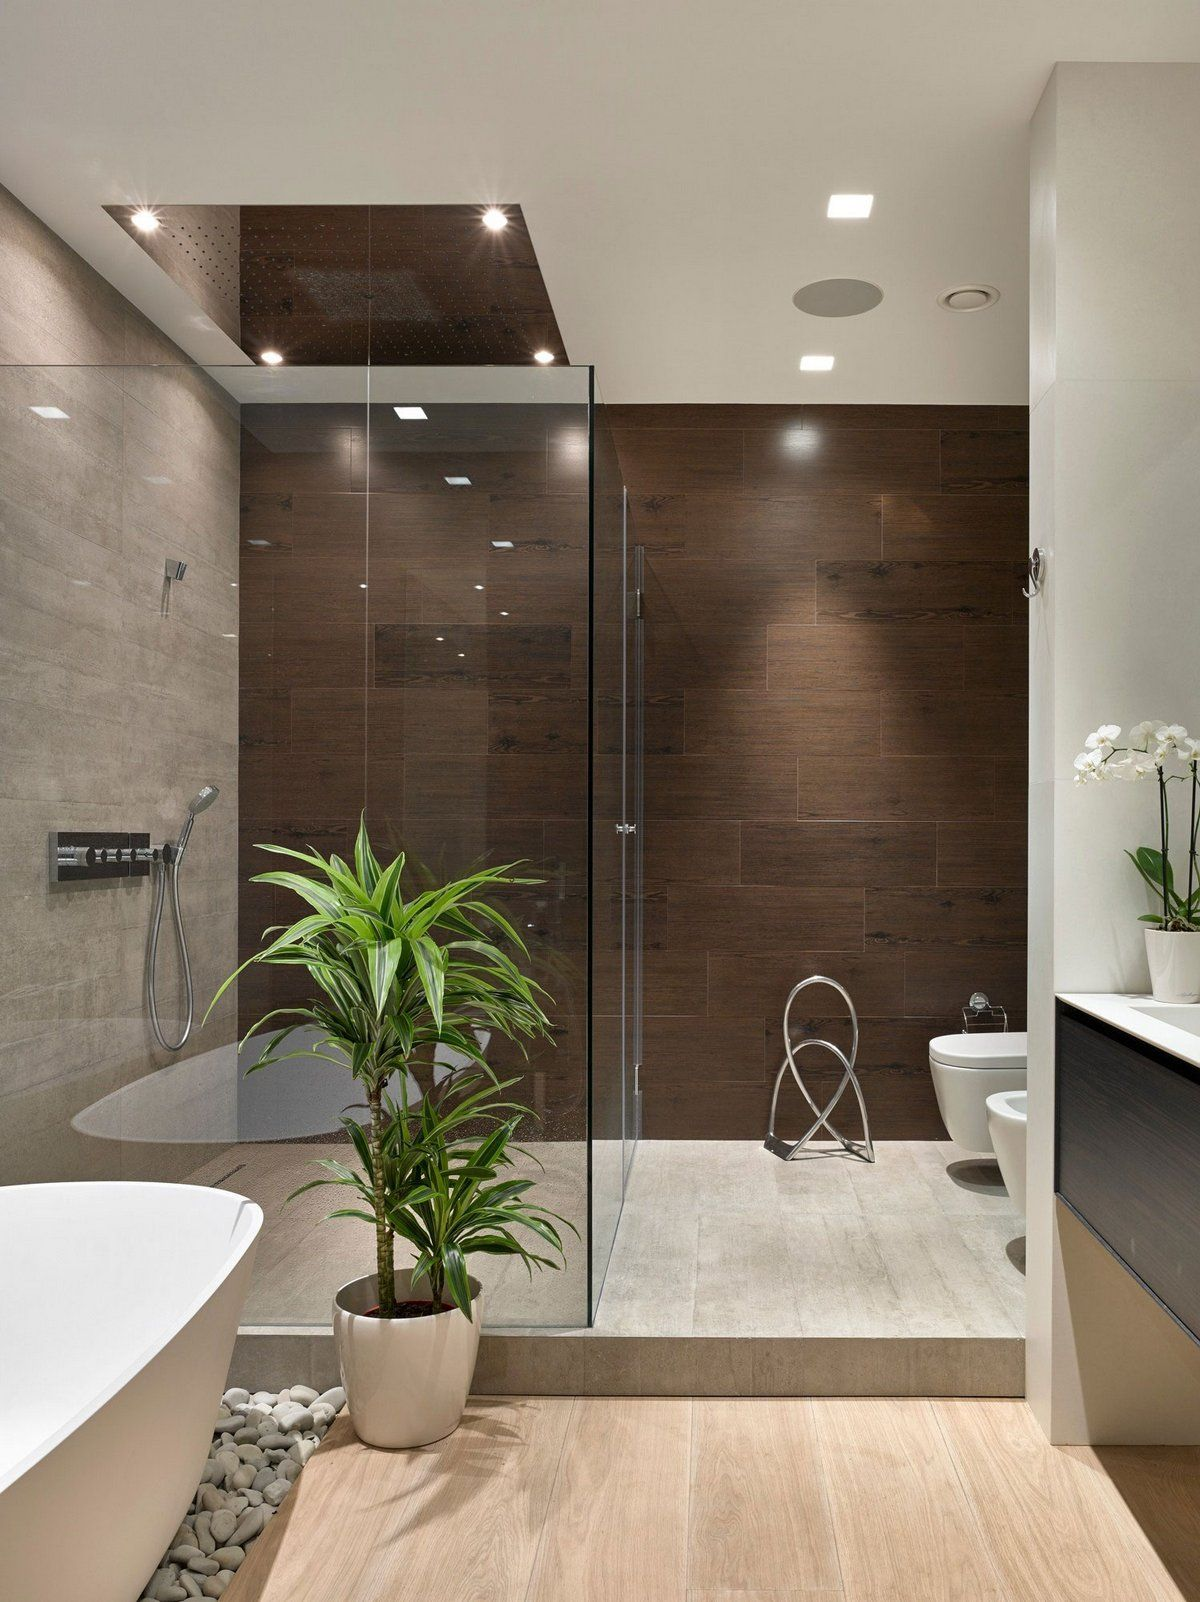 Charmant Modern Bathroom Design By Architect Alexander Fedorov